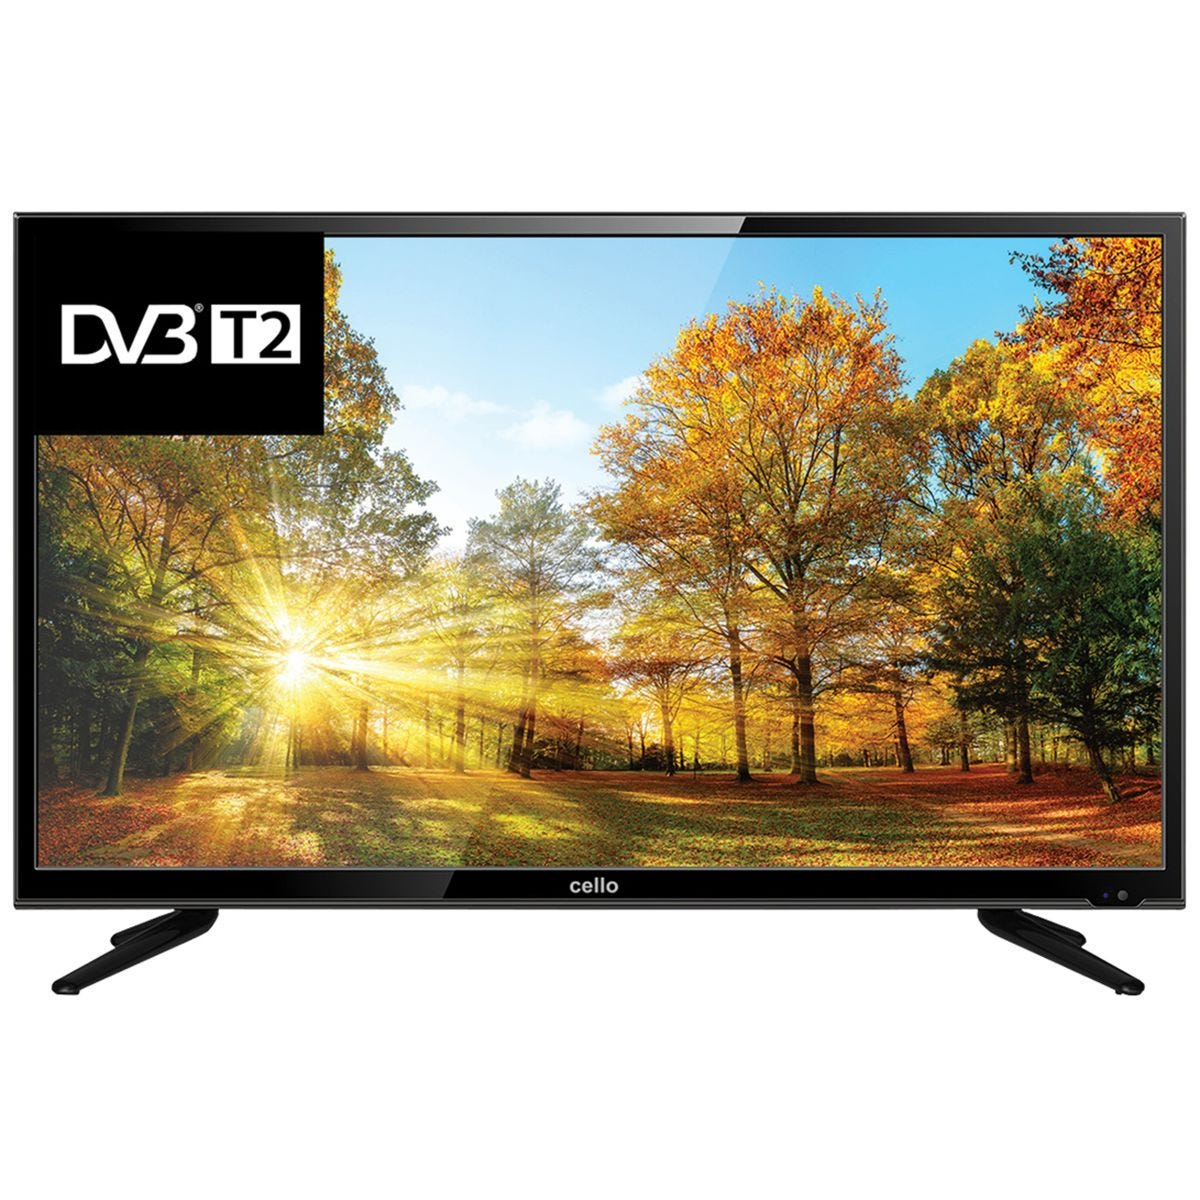 Cello 32 Inch LED Digital TV with Freeview T2 HD Channels - Black